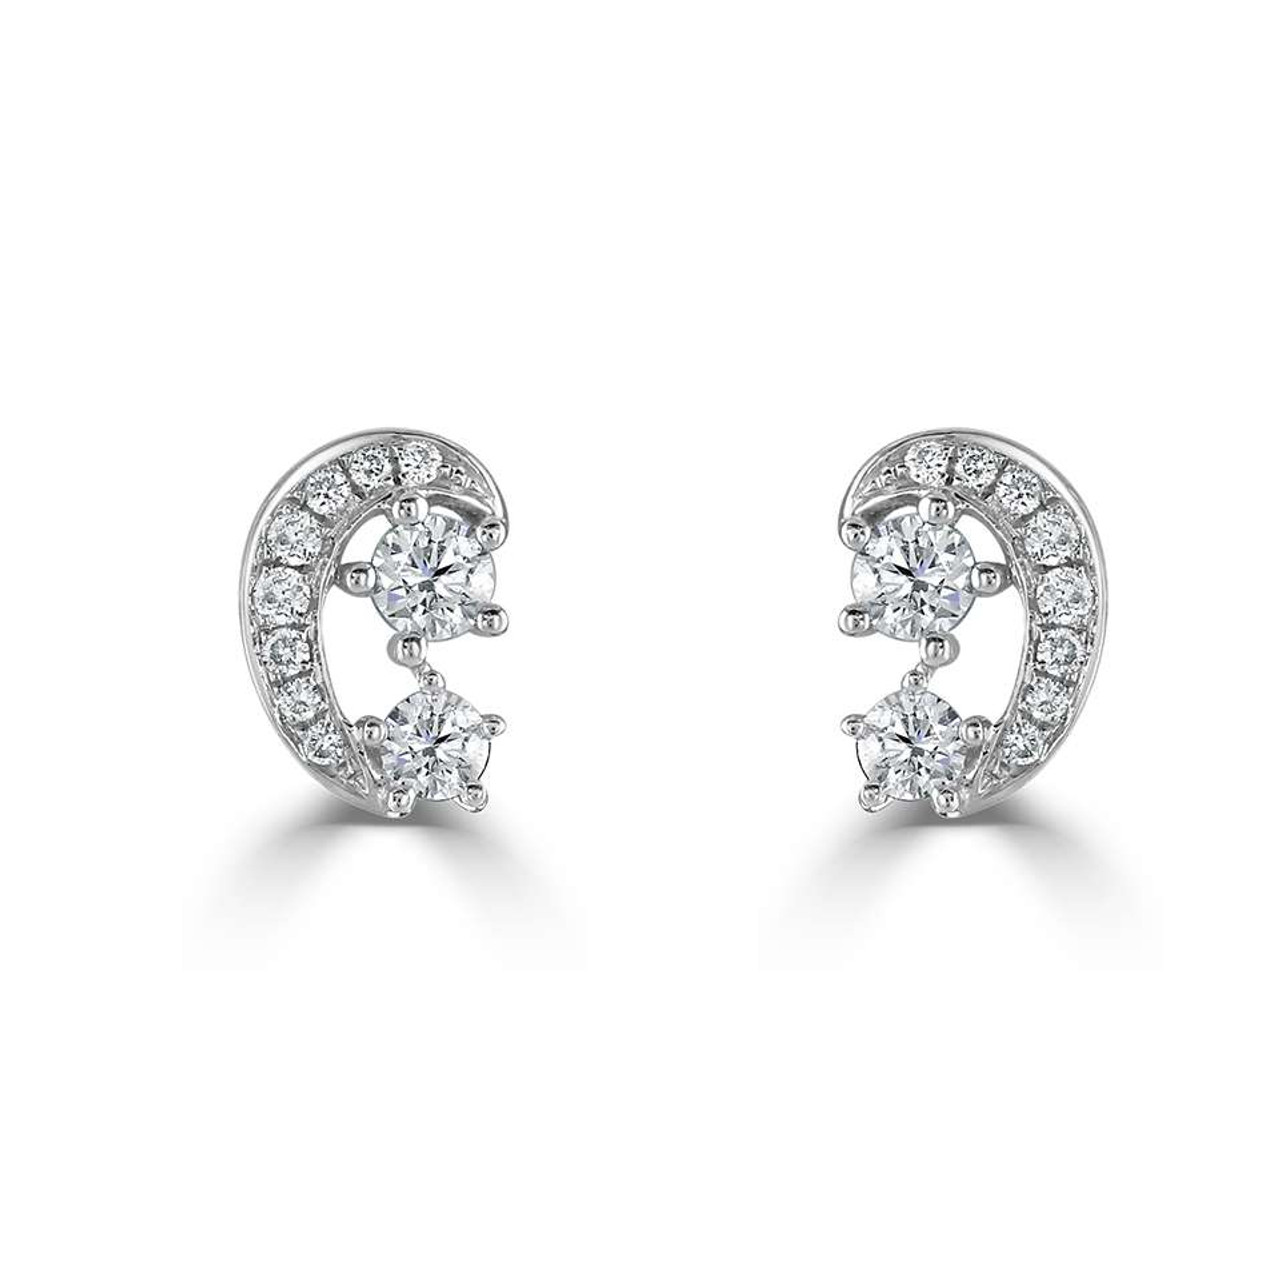 18ct White Gold Diamond Swirl Stud Earrings